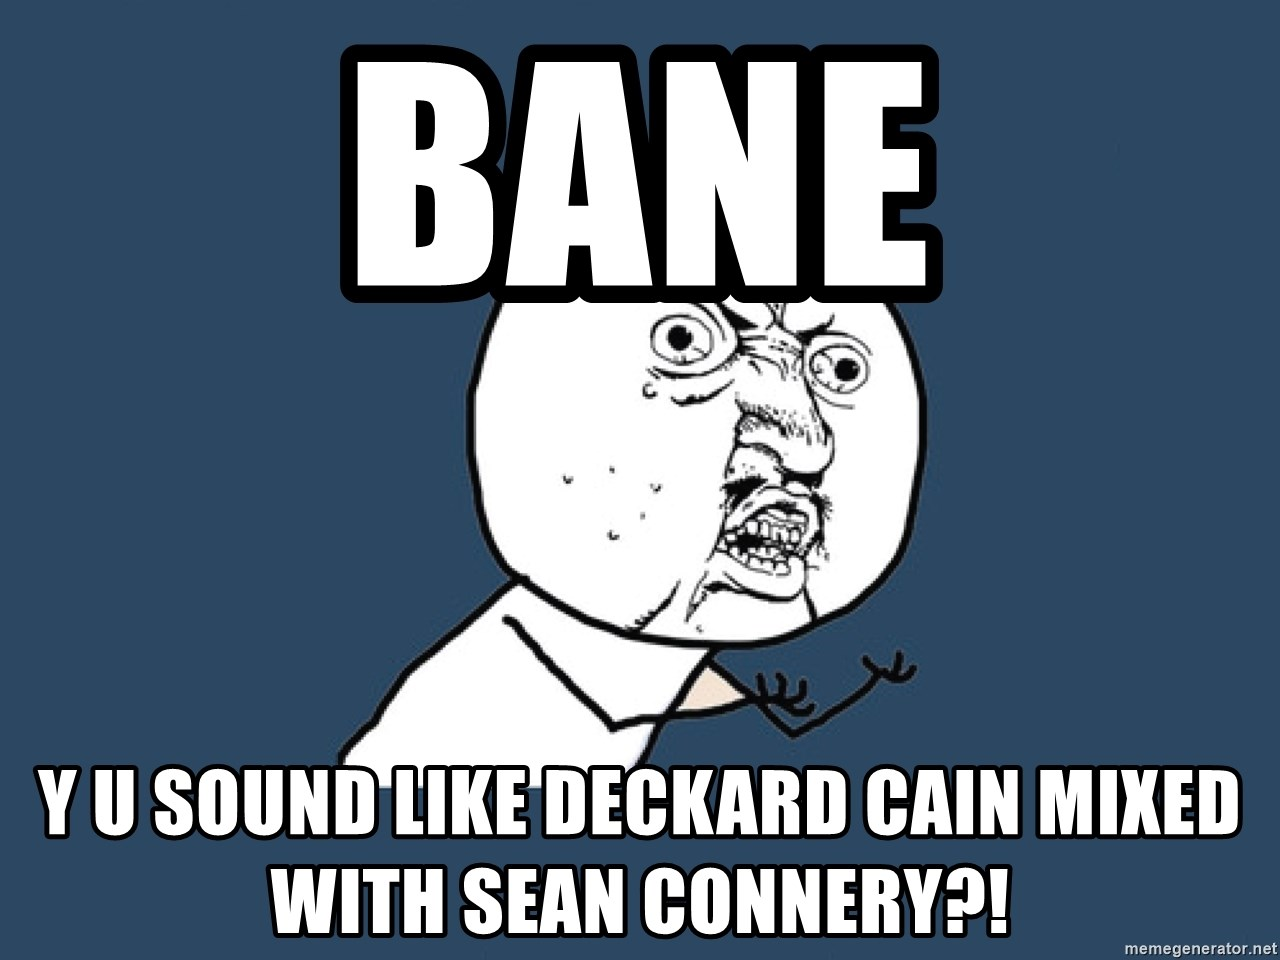 Bane Y U Sound Like Deckard Cain Mixed With Sean Connery Y U No